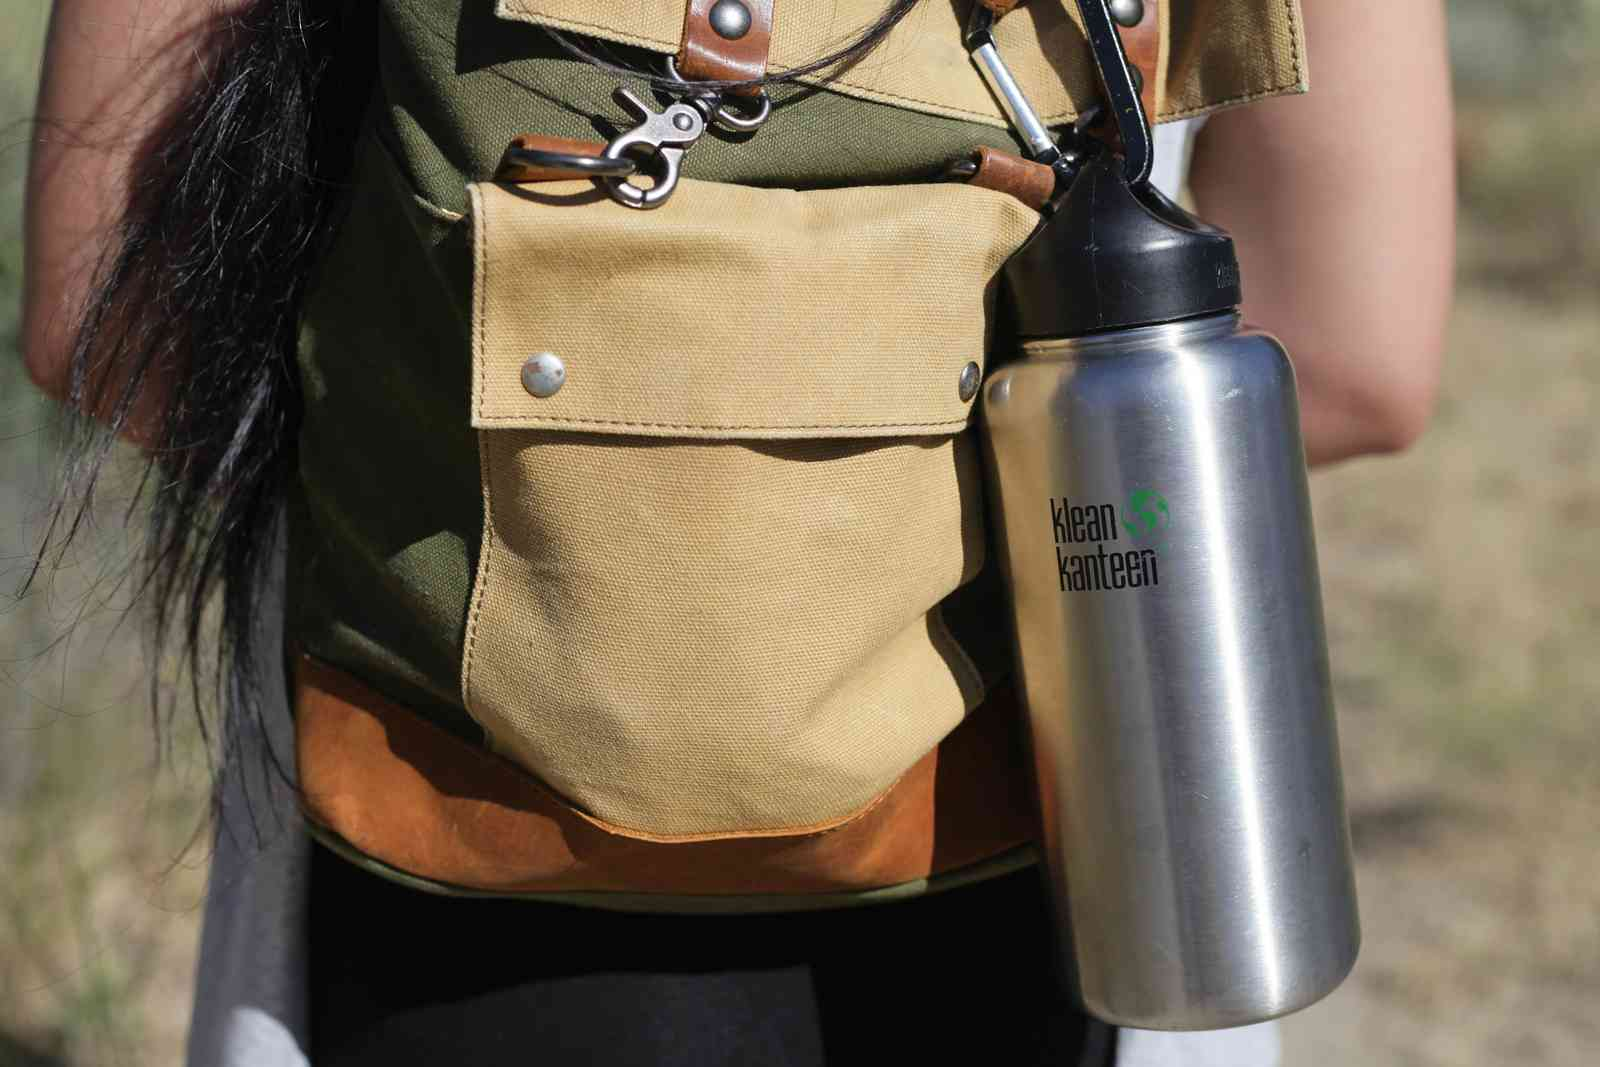 A woman hiking with a water bottle (Shutterstock)